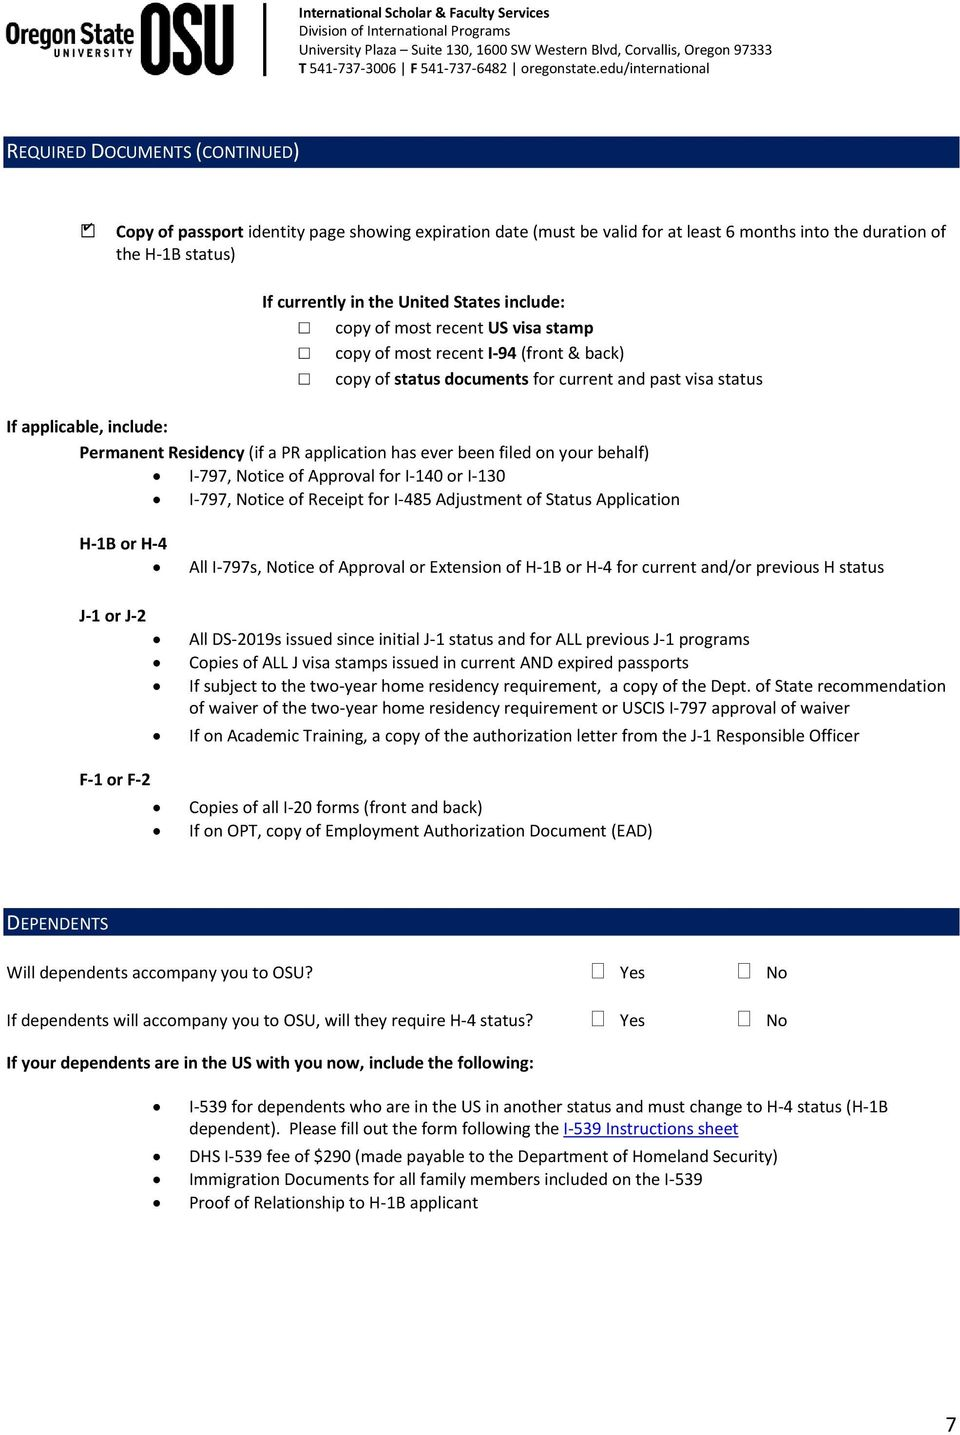 H-1B Application Checklist (submit as cover page) - PDF